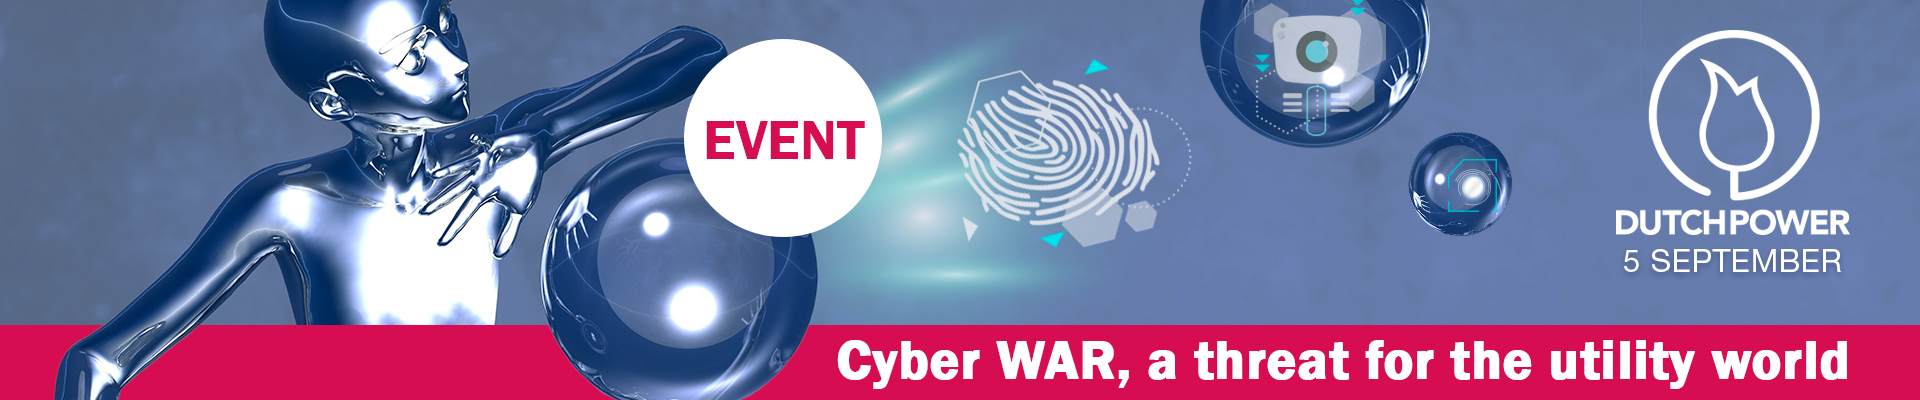 Cyber WAR, a threat for the utility world